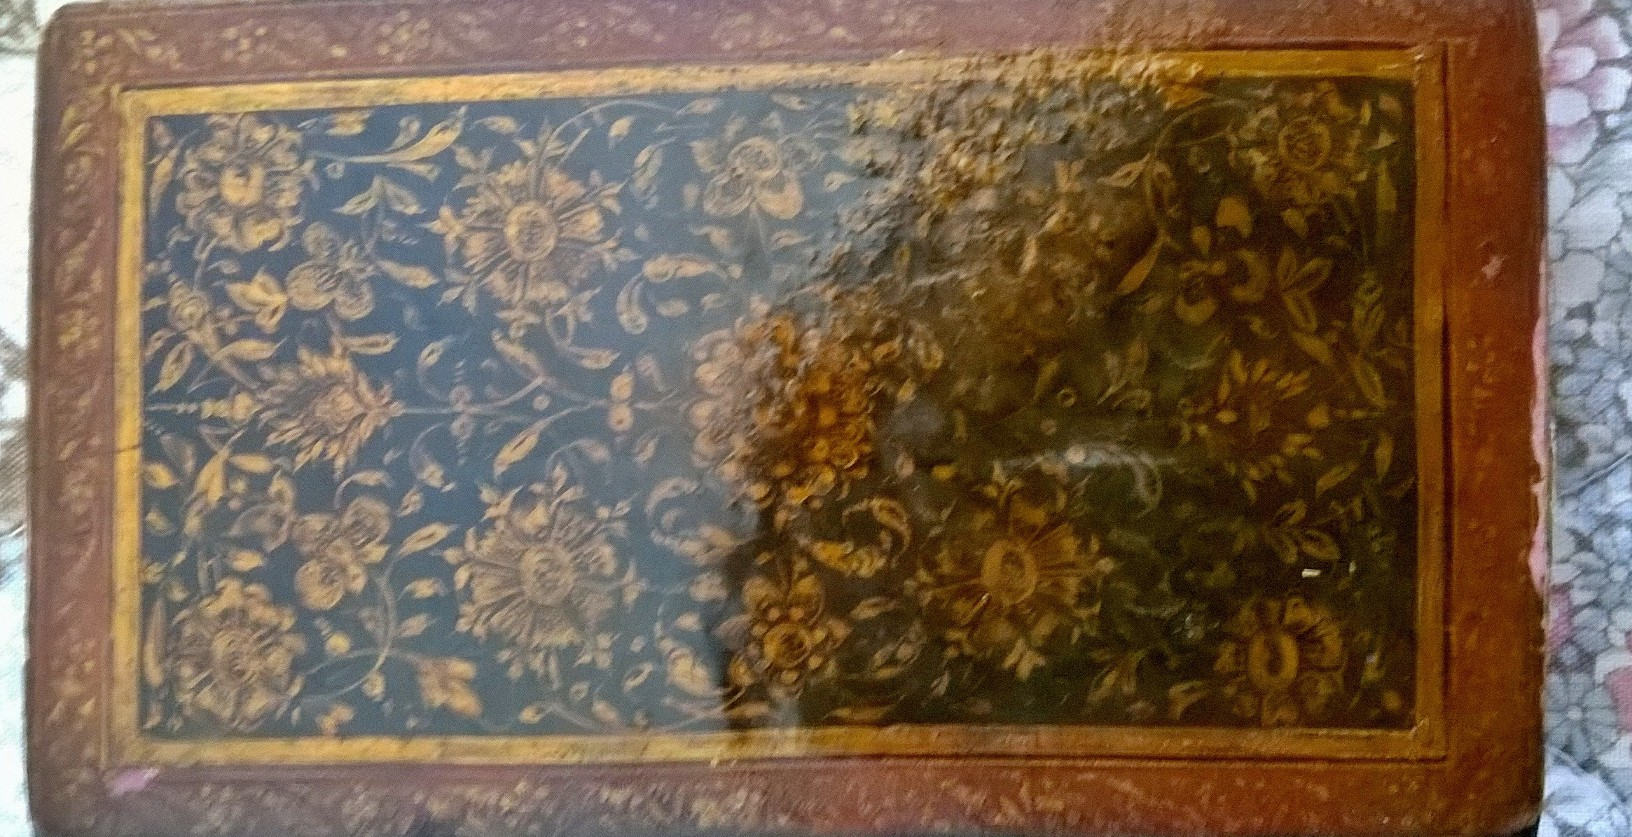 Old Book Covers For Sale ~ Quran for sale antiques classifieds